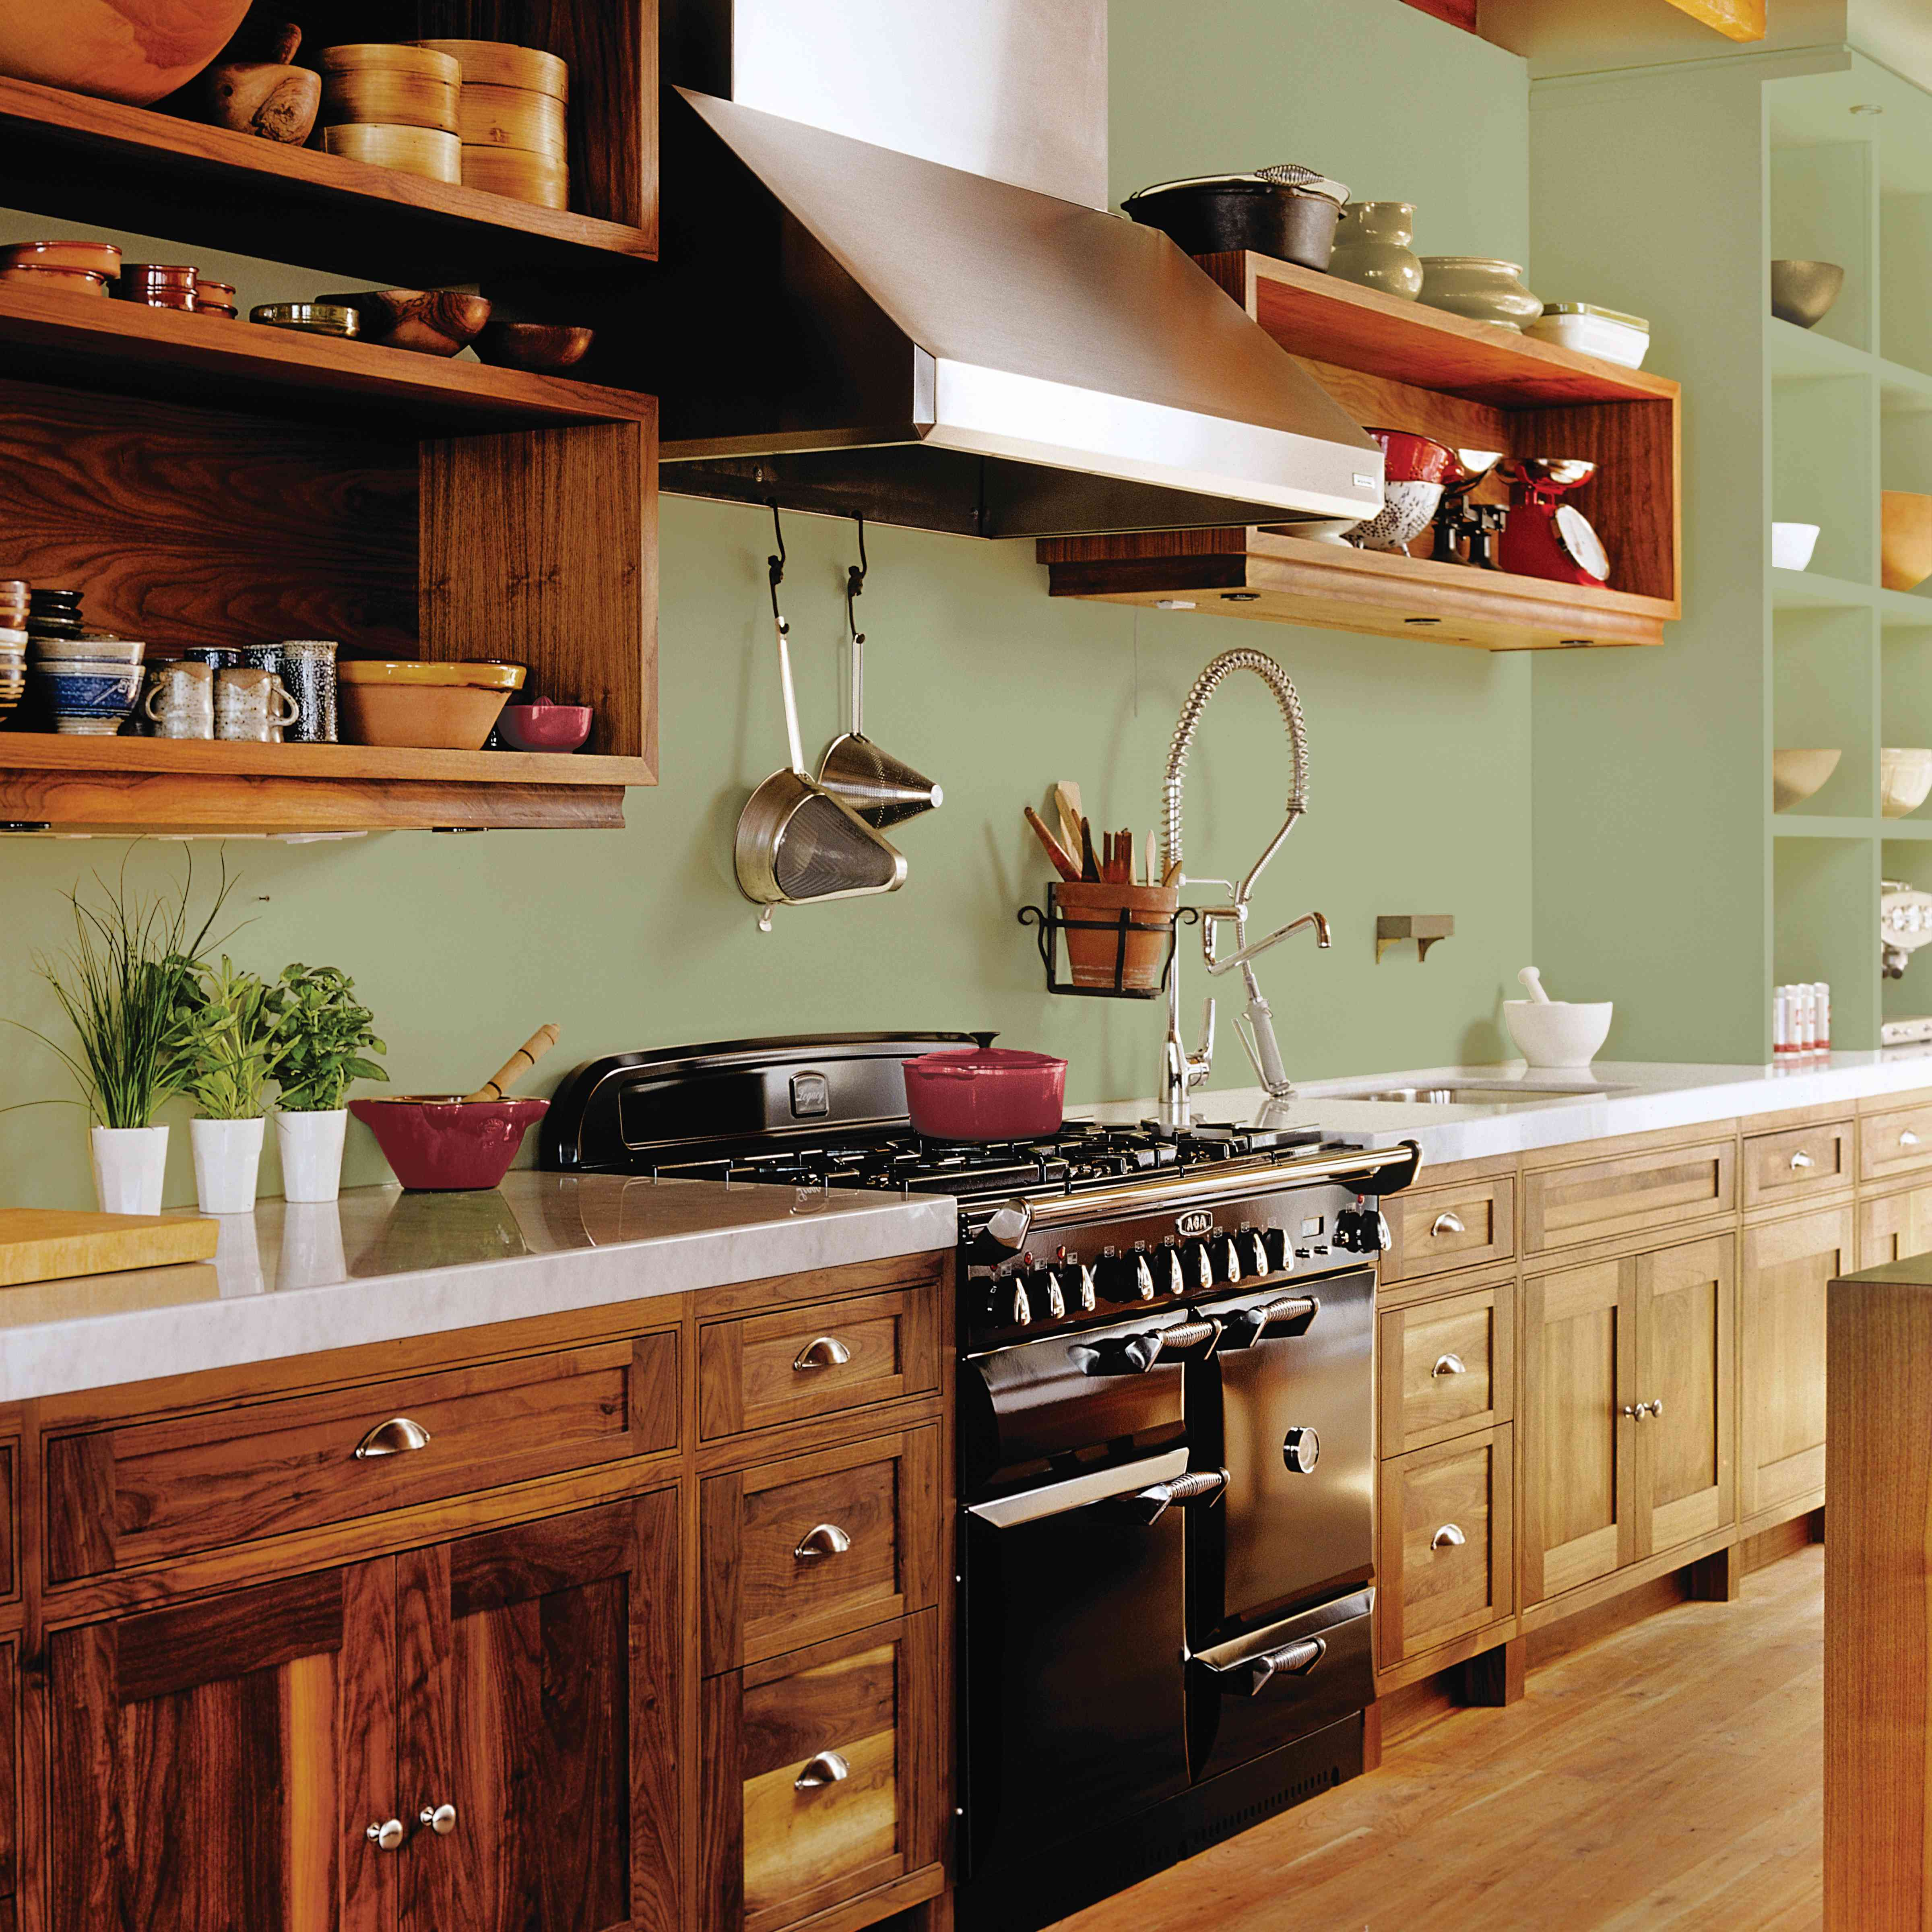 Kitchen painted in Olive Sprig by PPG